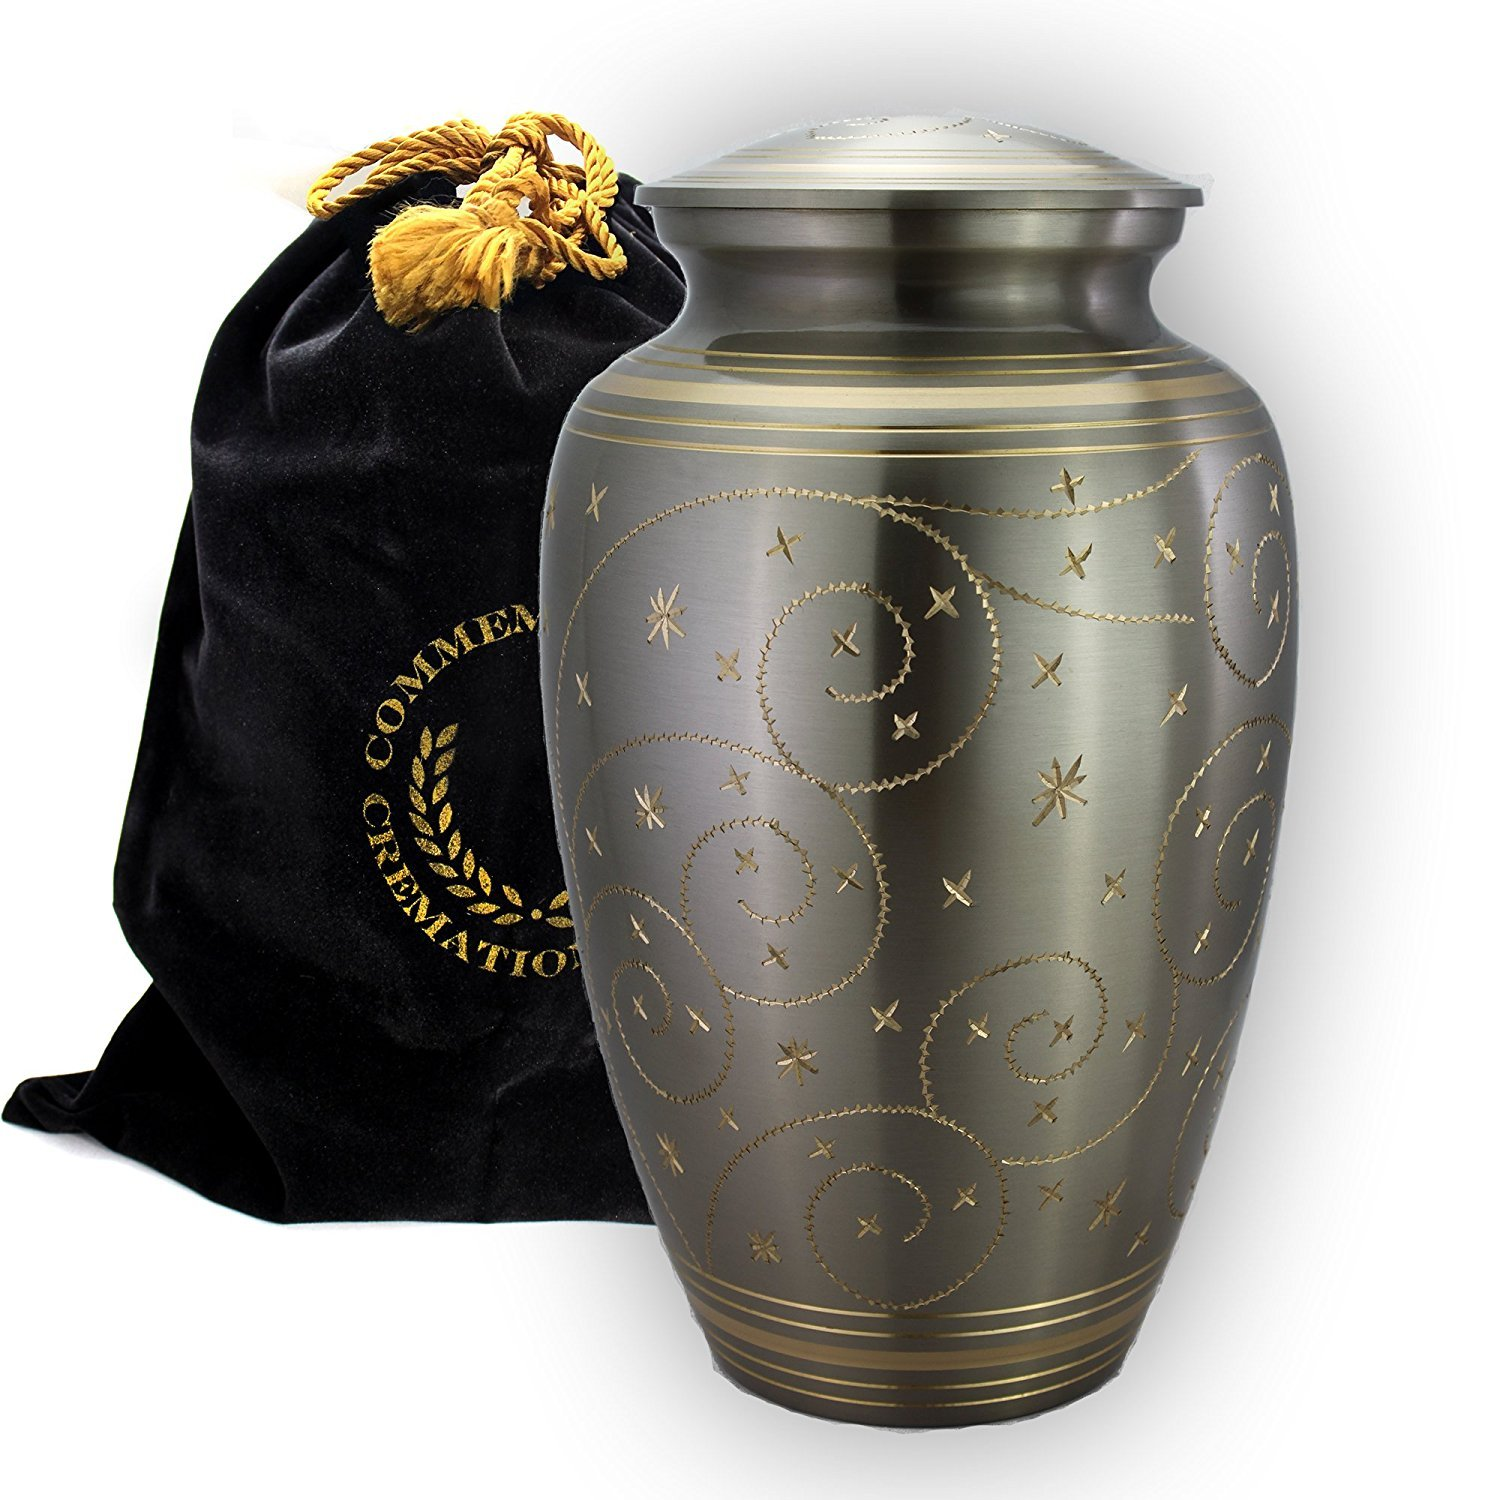 Star Light Brass Metal Funeral Cremation Urn for Human Ashes (Large) Commemorative Cremation Urns